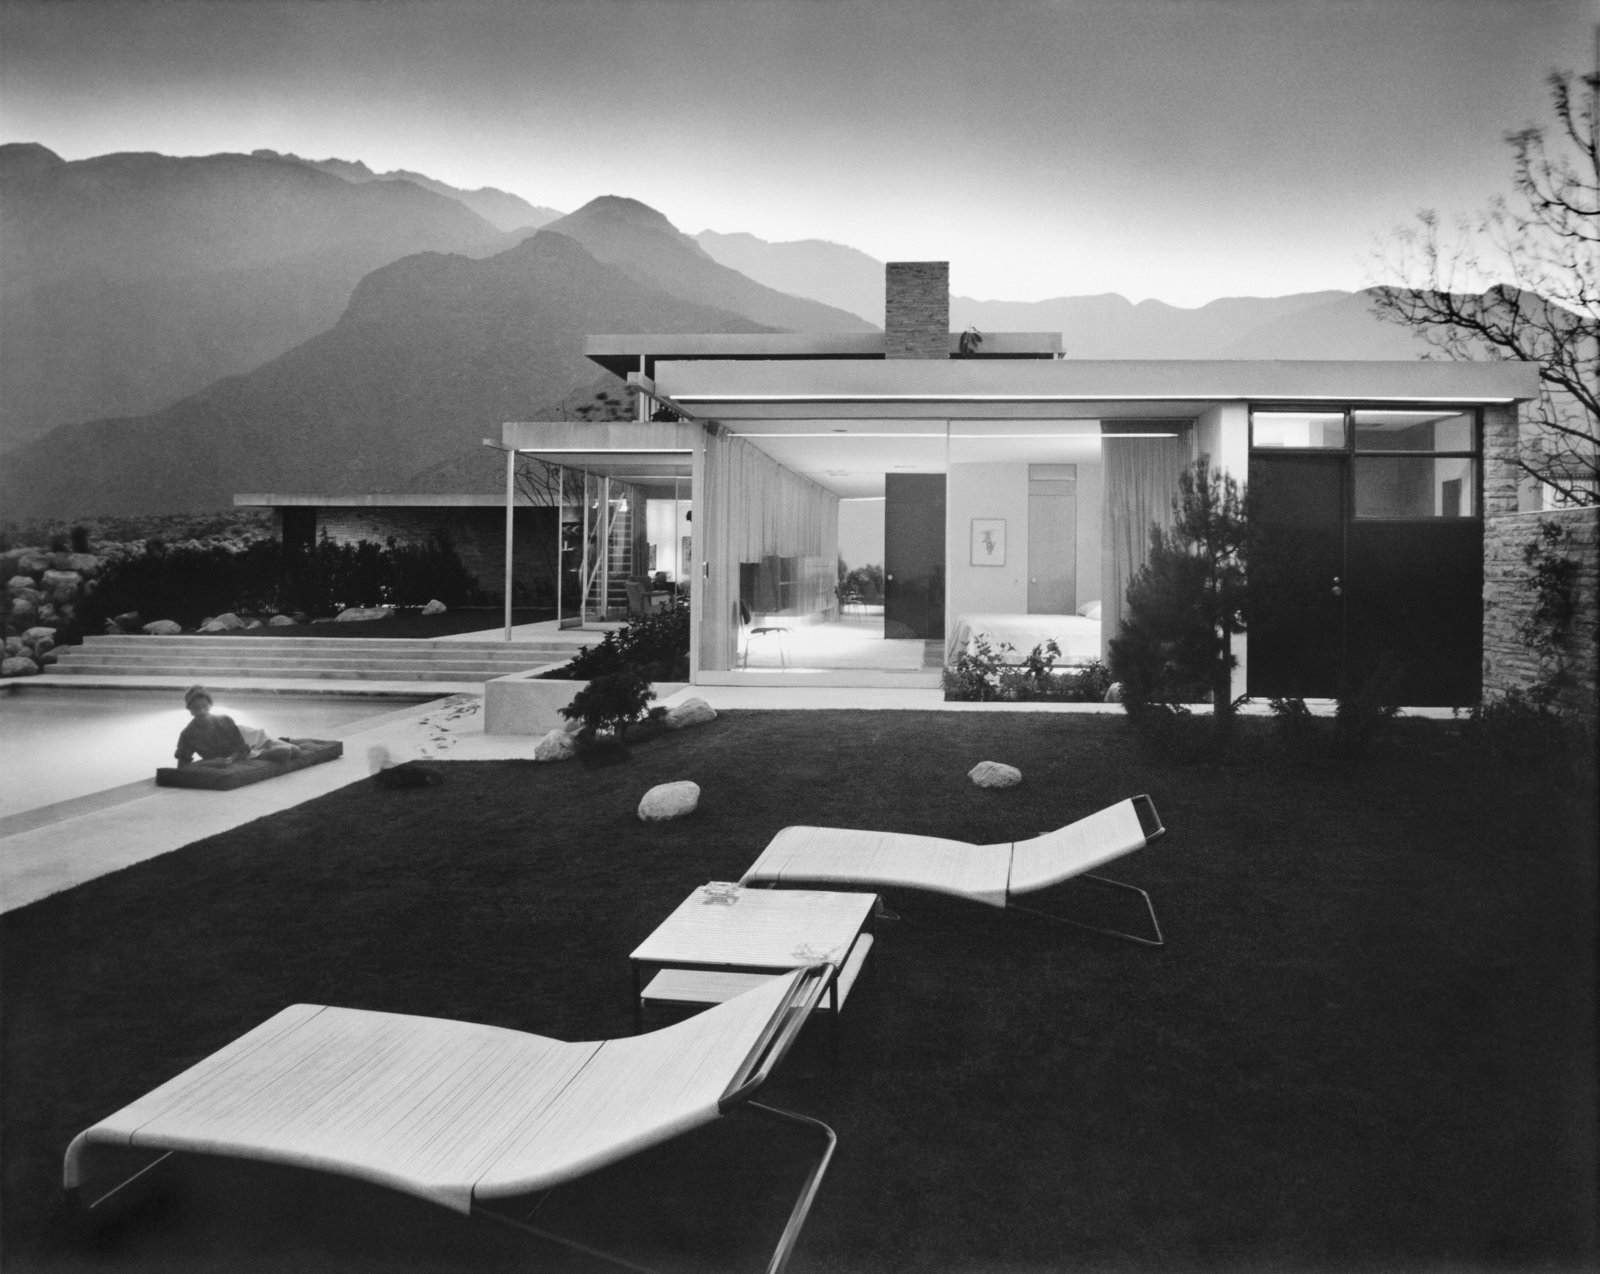 Vienna-born architect Richard Neutra designed the Kaufmann House in Palm Springs in 1947 for Edgar Kaufmann, Sr., the Jewish owner of a trendsetting Pittsburgh department store. Jewish architectural photographer Julius Schulman captured the striking home in this image. Courtesy J. Paul Getty Trust.